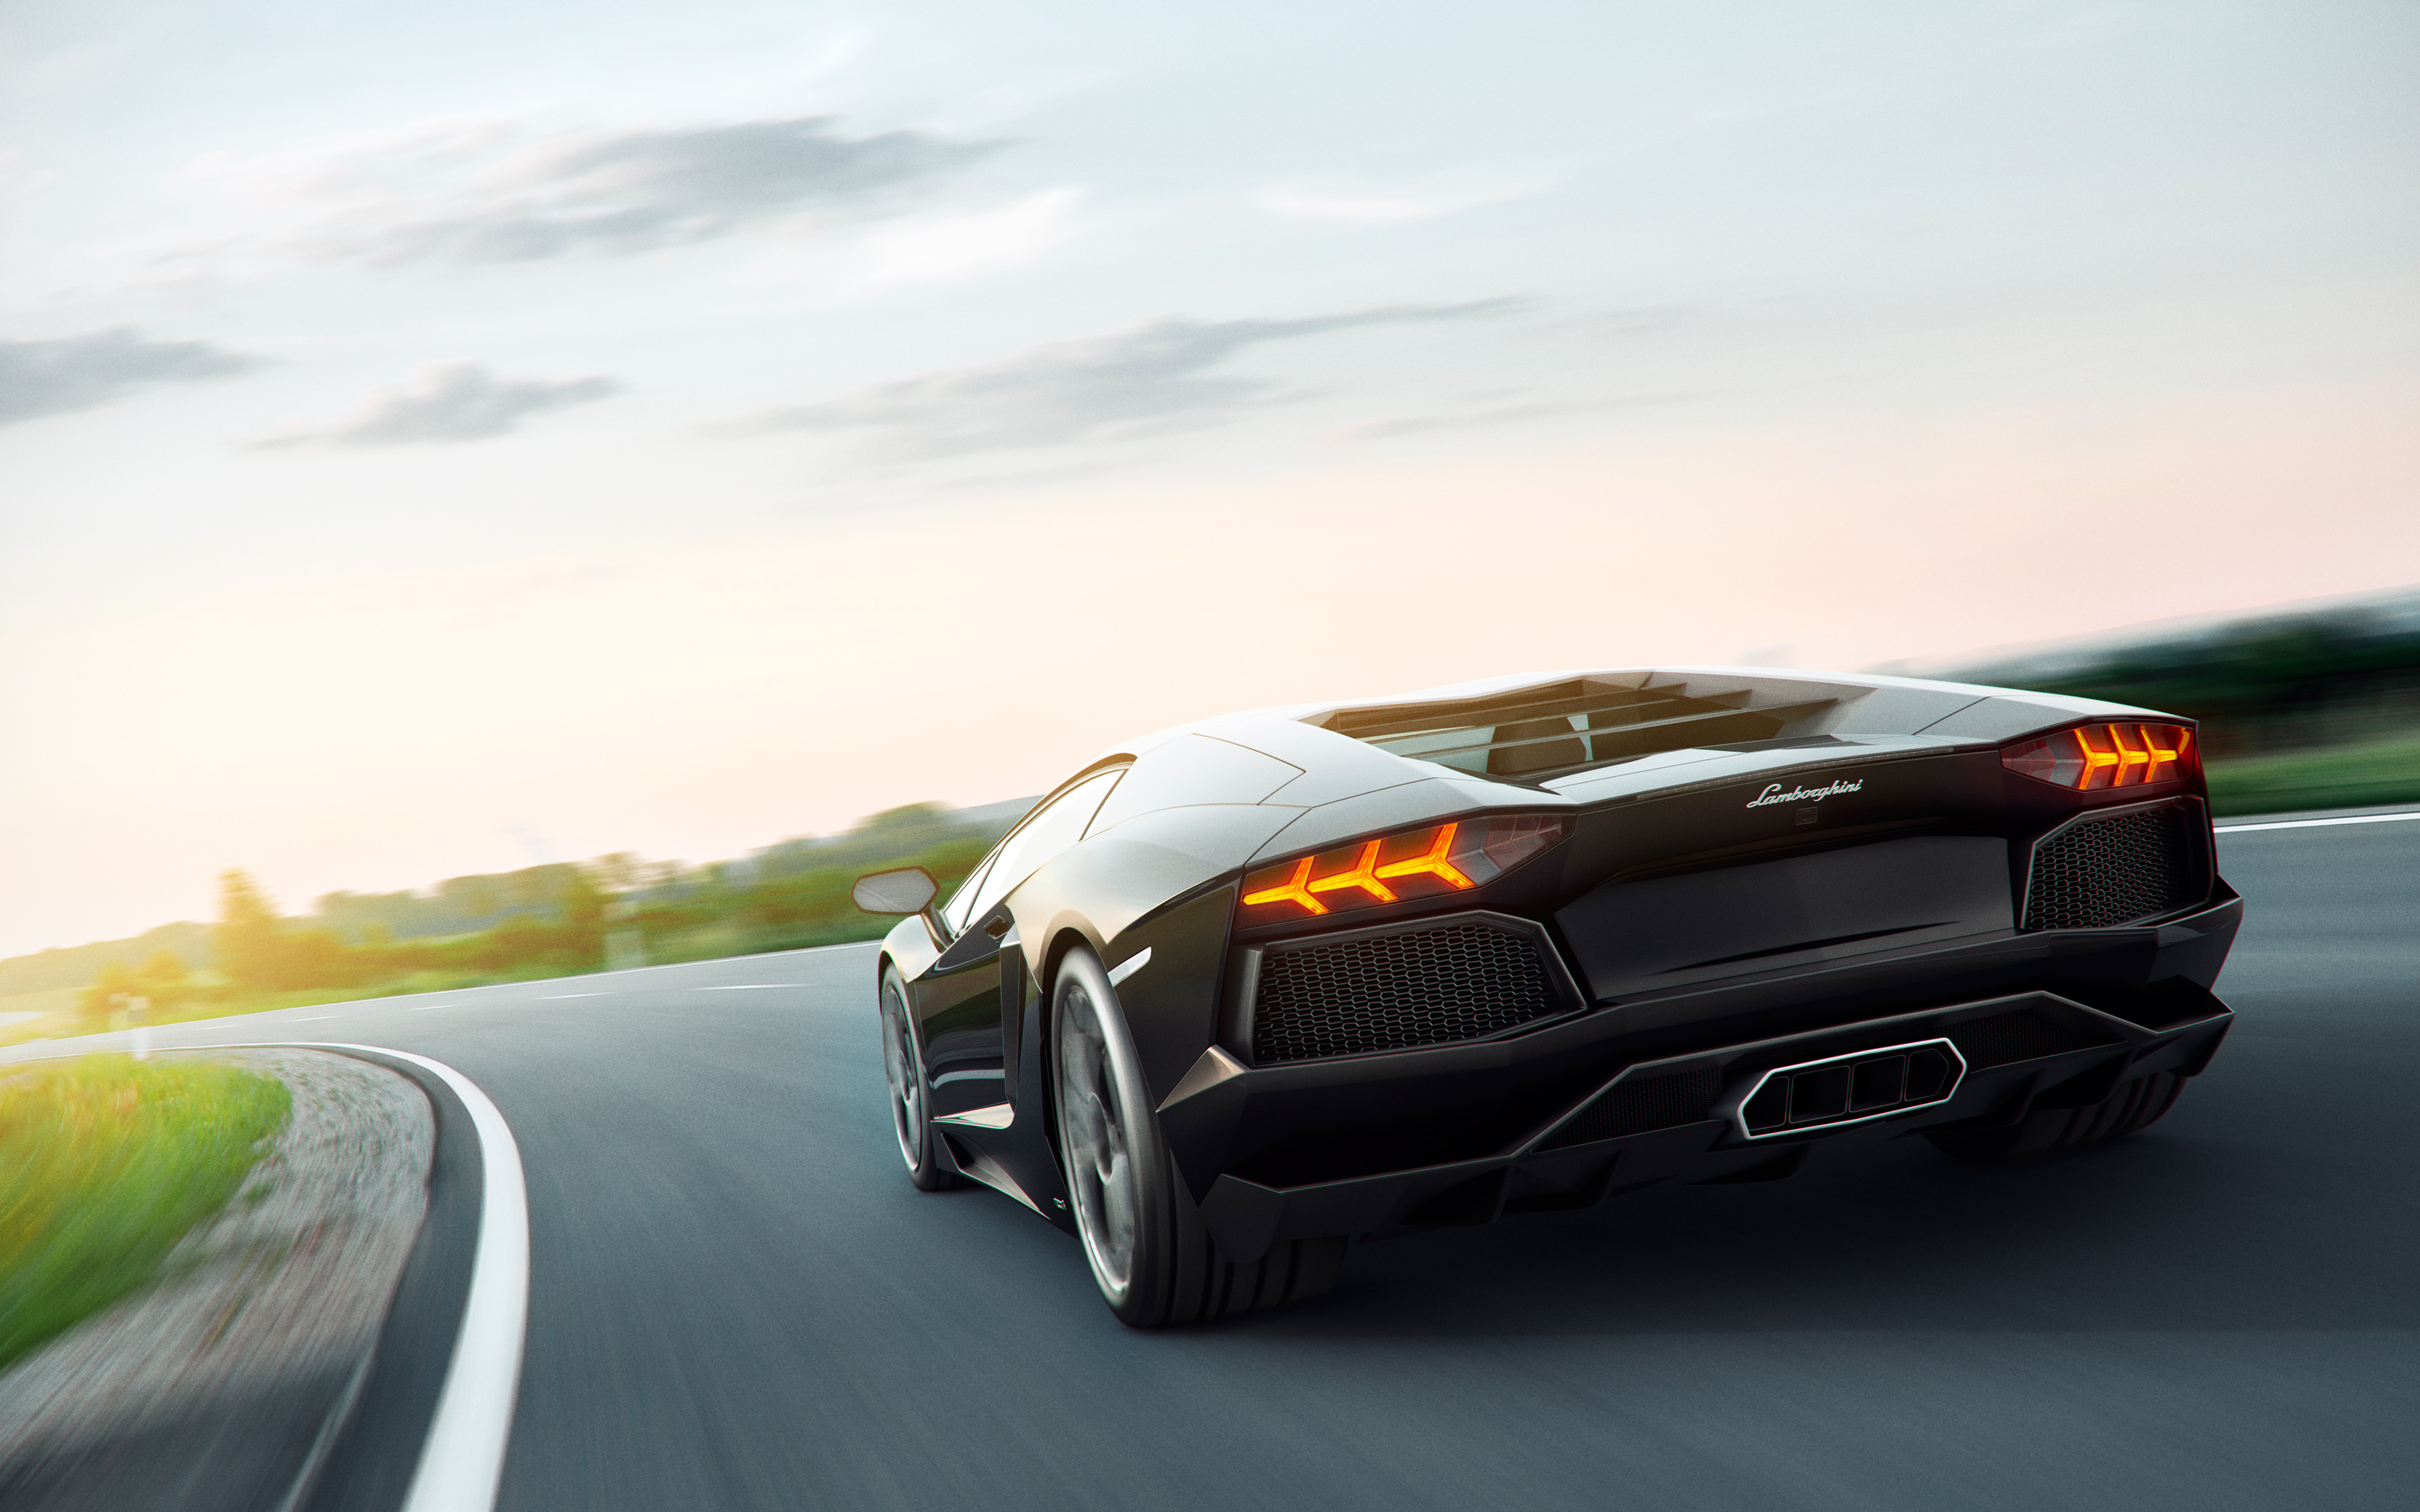 Lamborghini Aventador Art Wallpapers HD Wallpapers 2880x1800